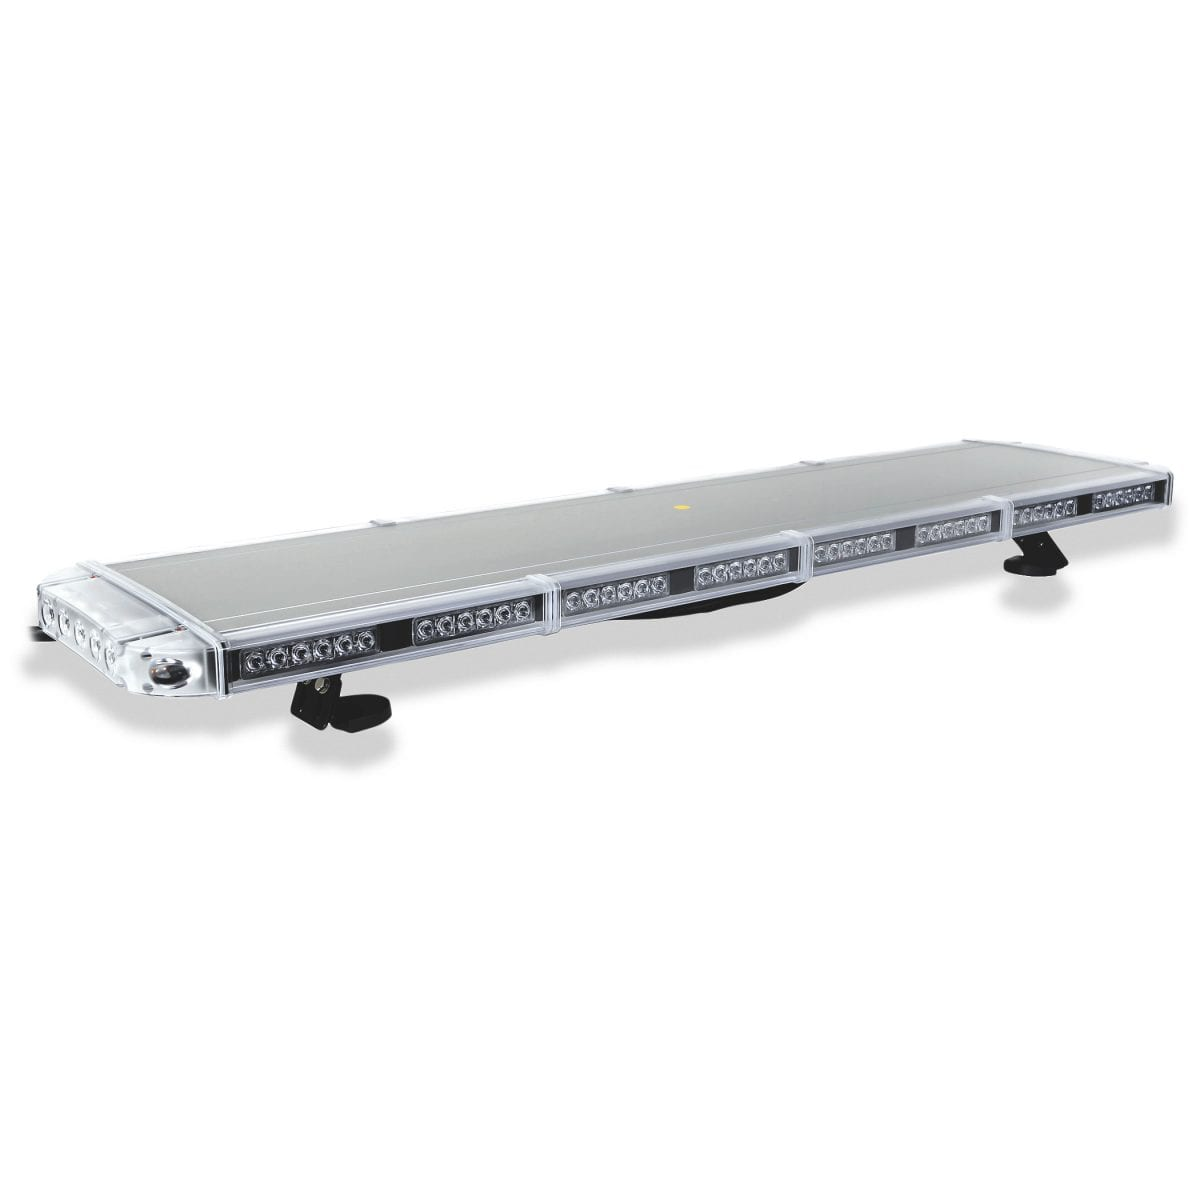 Predator TIR Emergency 3 watt LED Light Bar 48 in